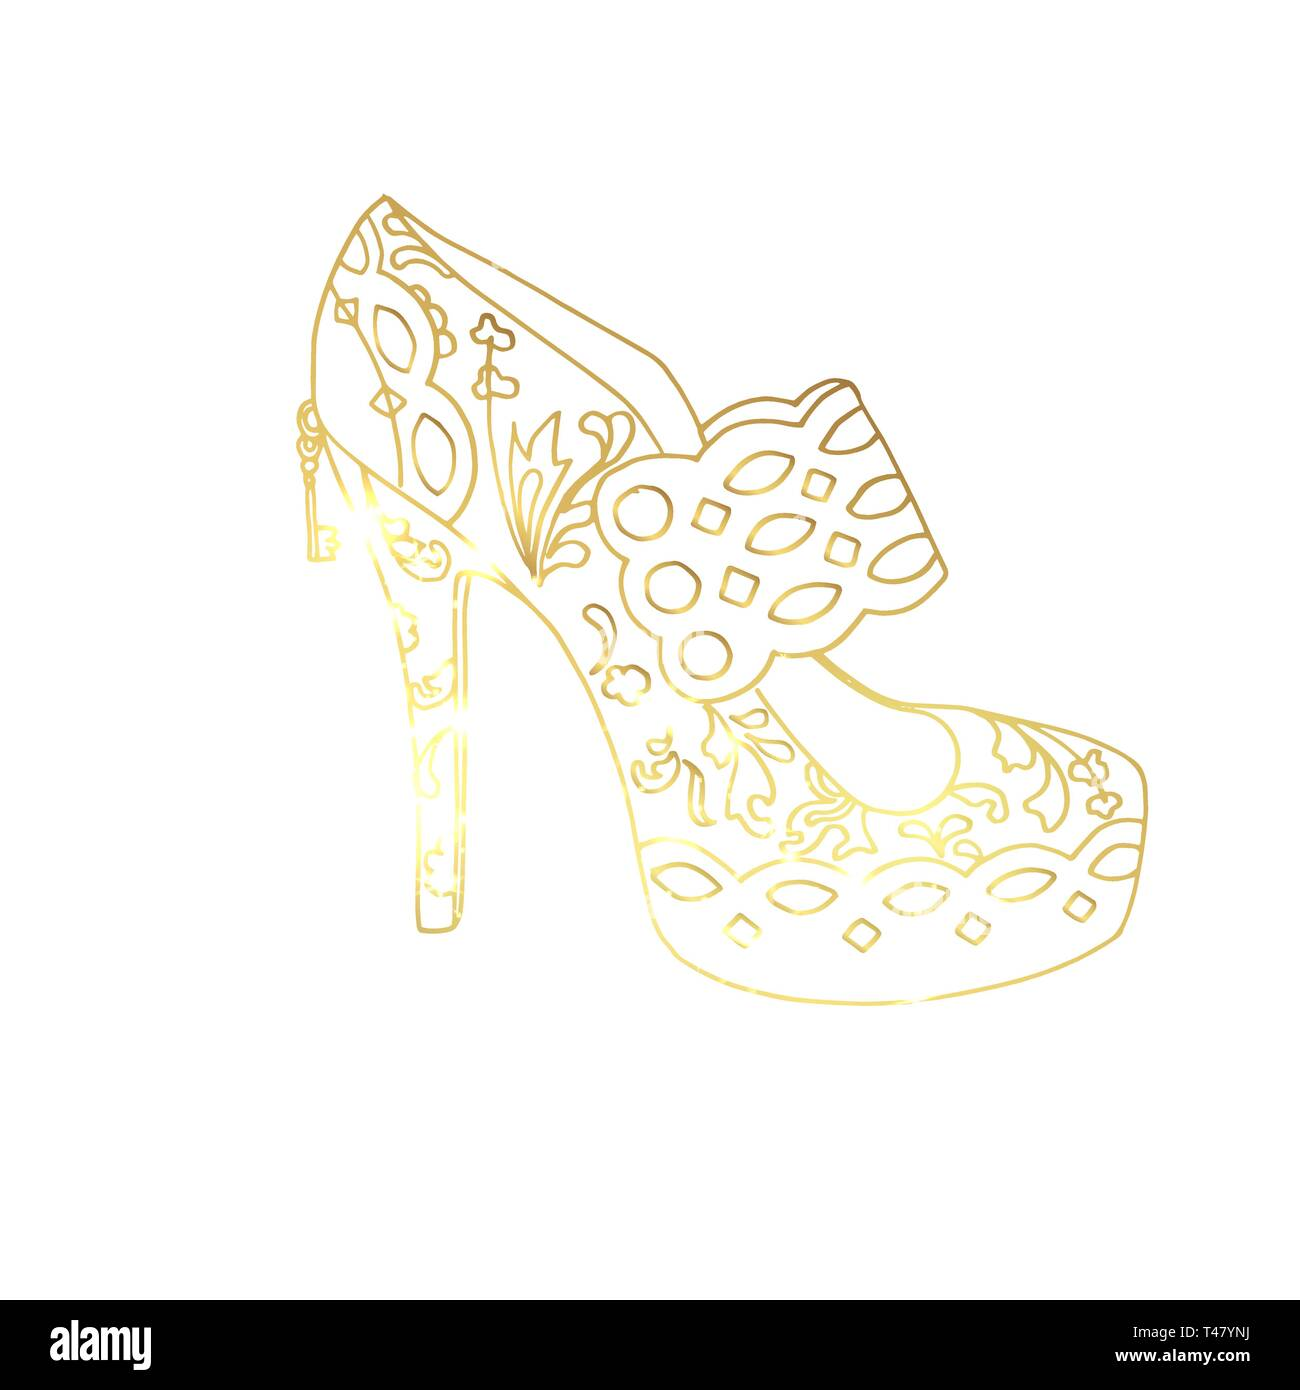 Golden high heel shoe hand drawn vector illustration. Women s shoe abstract sketch. Female footwear gradient outline drawing. Golden high heels sketched clipart. Isolated fashion design element - Stock Image